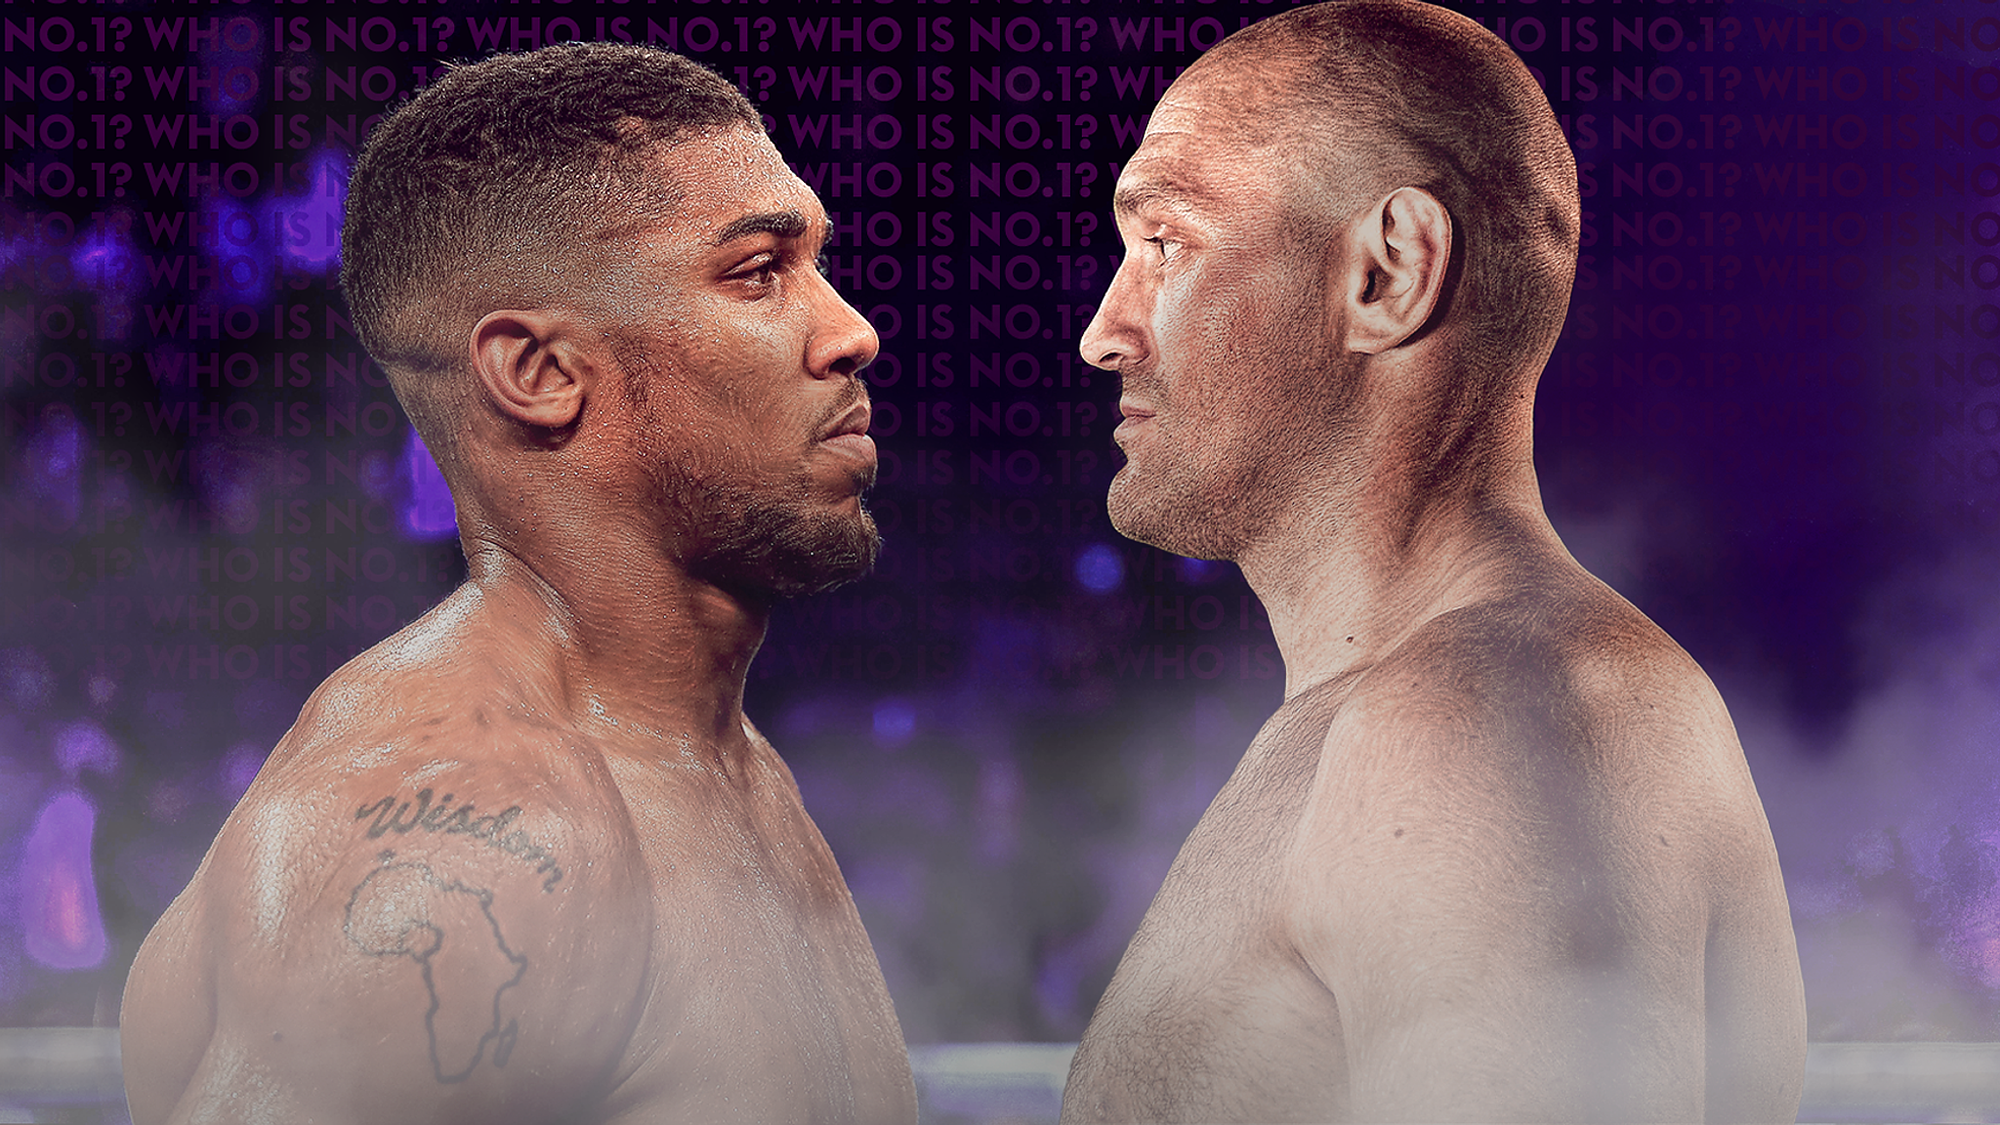 Joshua (left) - Fury is currently the most anticipated heavyweight boxing match.  Photo: Sky